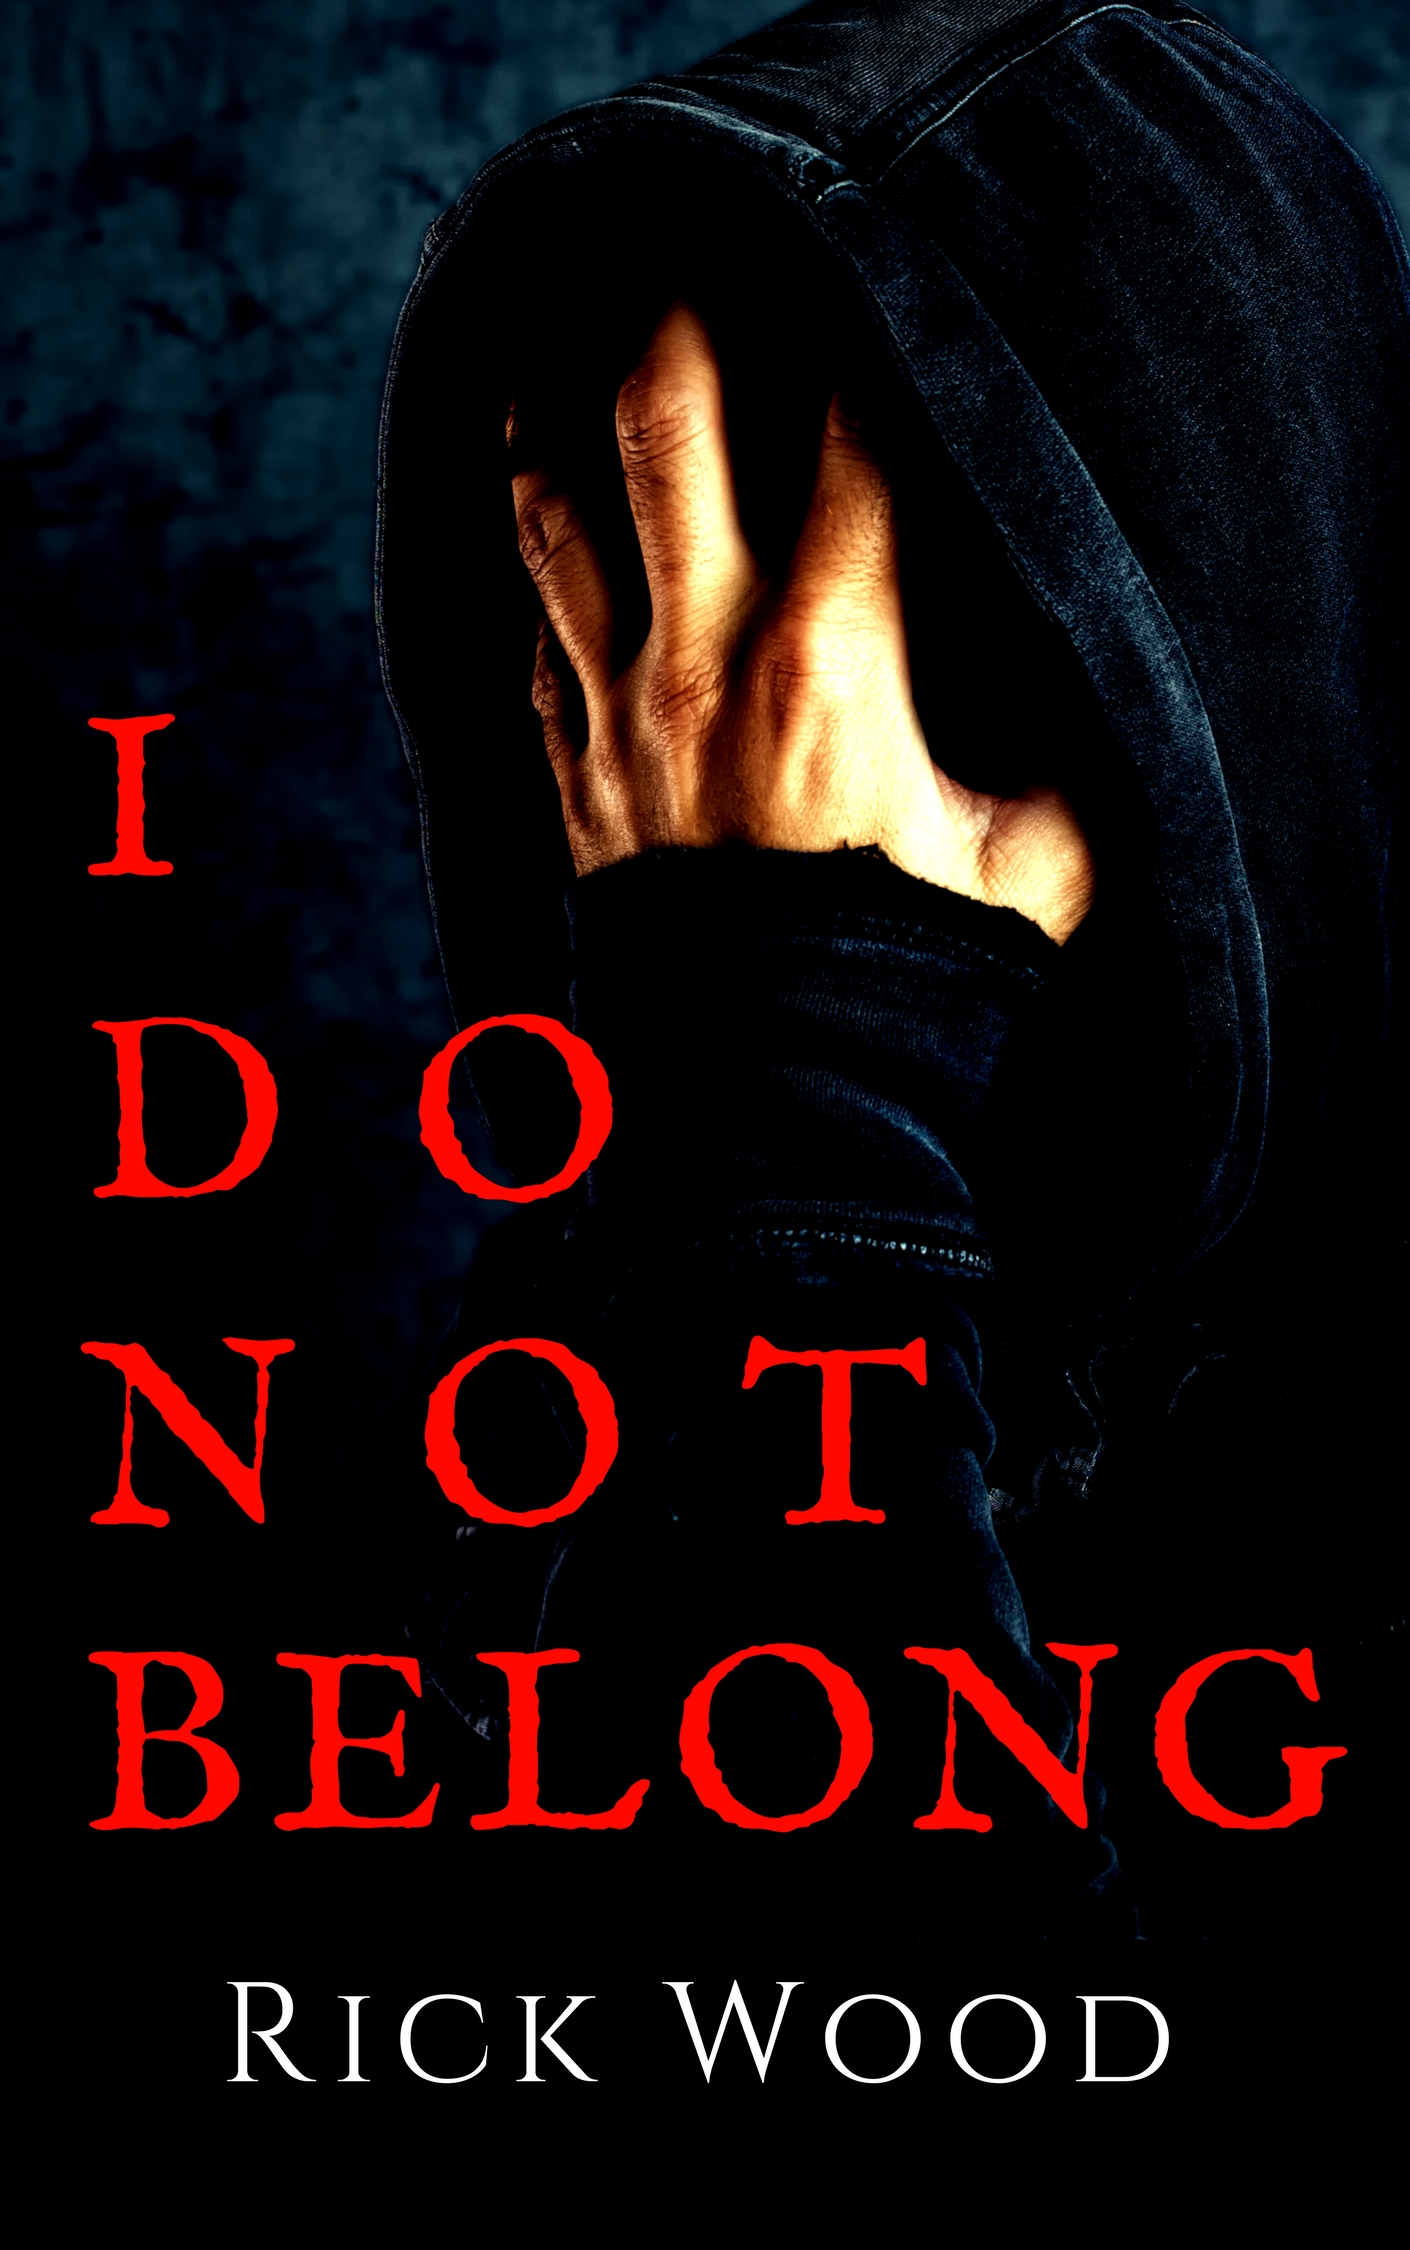 I Do Not Belong